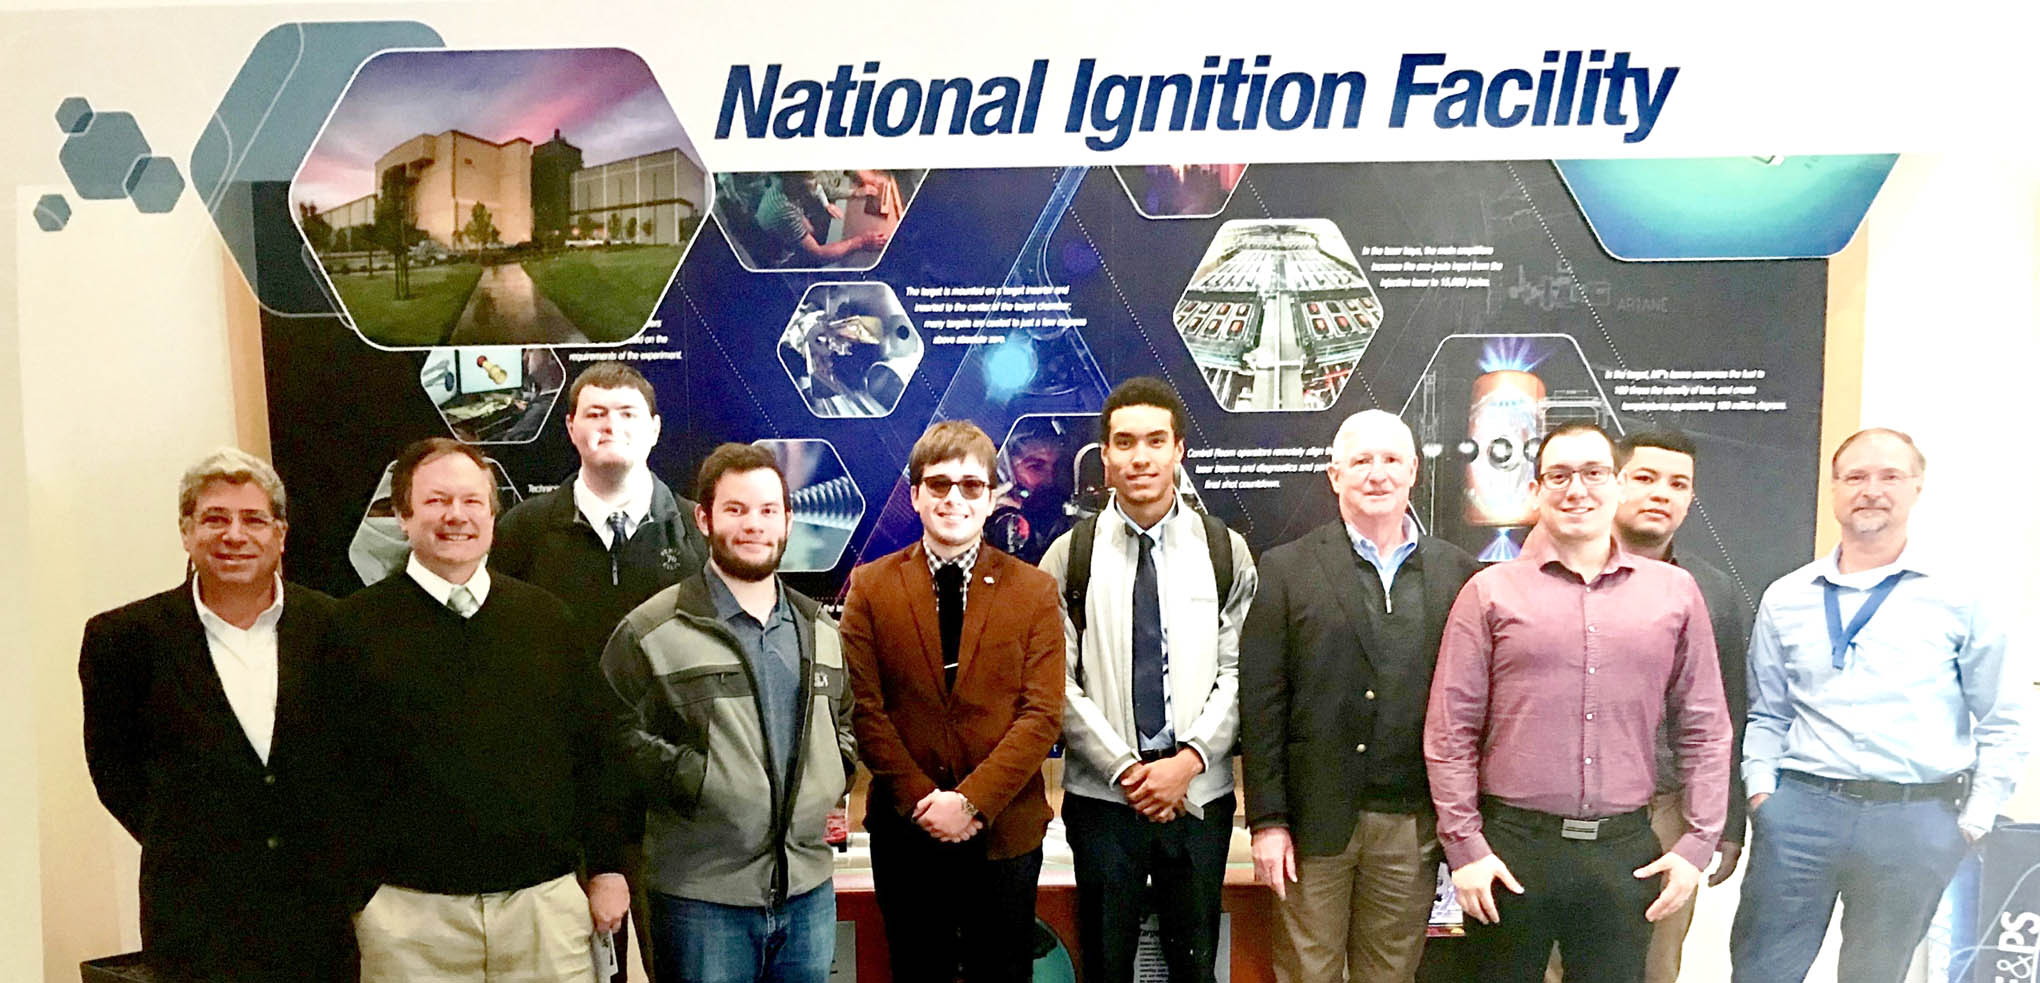 Click to enlarge,  Second-year students in the Laser and Photonics Technology program at Central Carolina Community College's Harnett Main Campus toured the LLNL NIF Facility in California. Pictured are, left to right: Chrysanthos Panayiotou (LASER-TEC Principal Investigator), Robert Strickland, Ian Washburn, Cameron Wiedholz, Jamie Turner, Brandon Pasley, Gary Beasley (lead instructor), Al Delong (2015 CCCC Laser Graduate with LLNL, who help lead the tour), Kilvet Zalavarria, and Brian Olejniczak (LLNL Laser Systems Engineering & Operations Director).